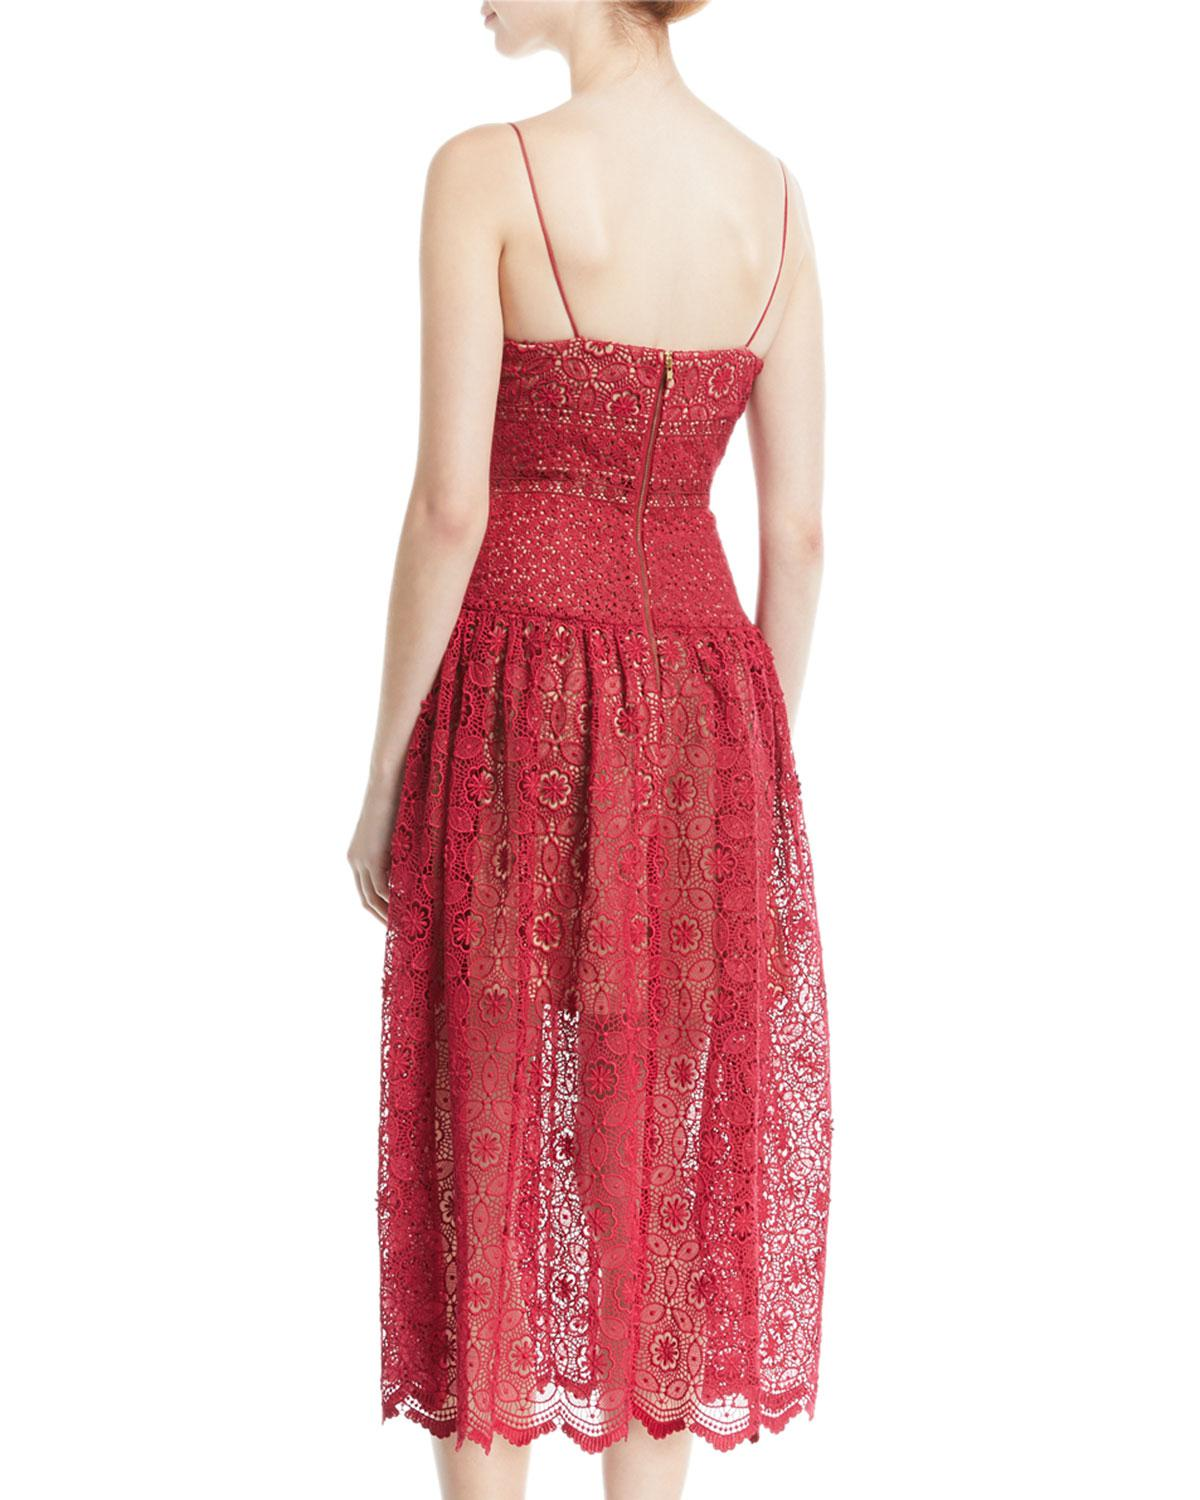 3a4778ccb855d Lyst - Self-Portrait Sleeveless Floral-lace Midi Cocktail Dress in Red -  Save 30%